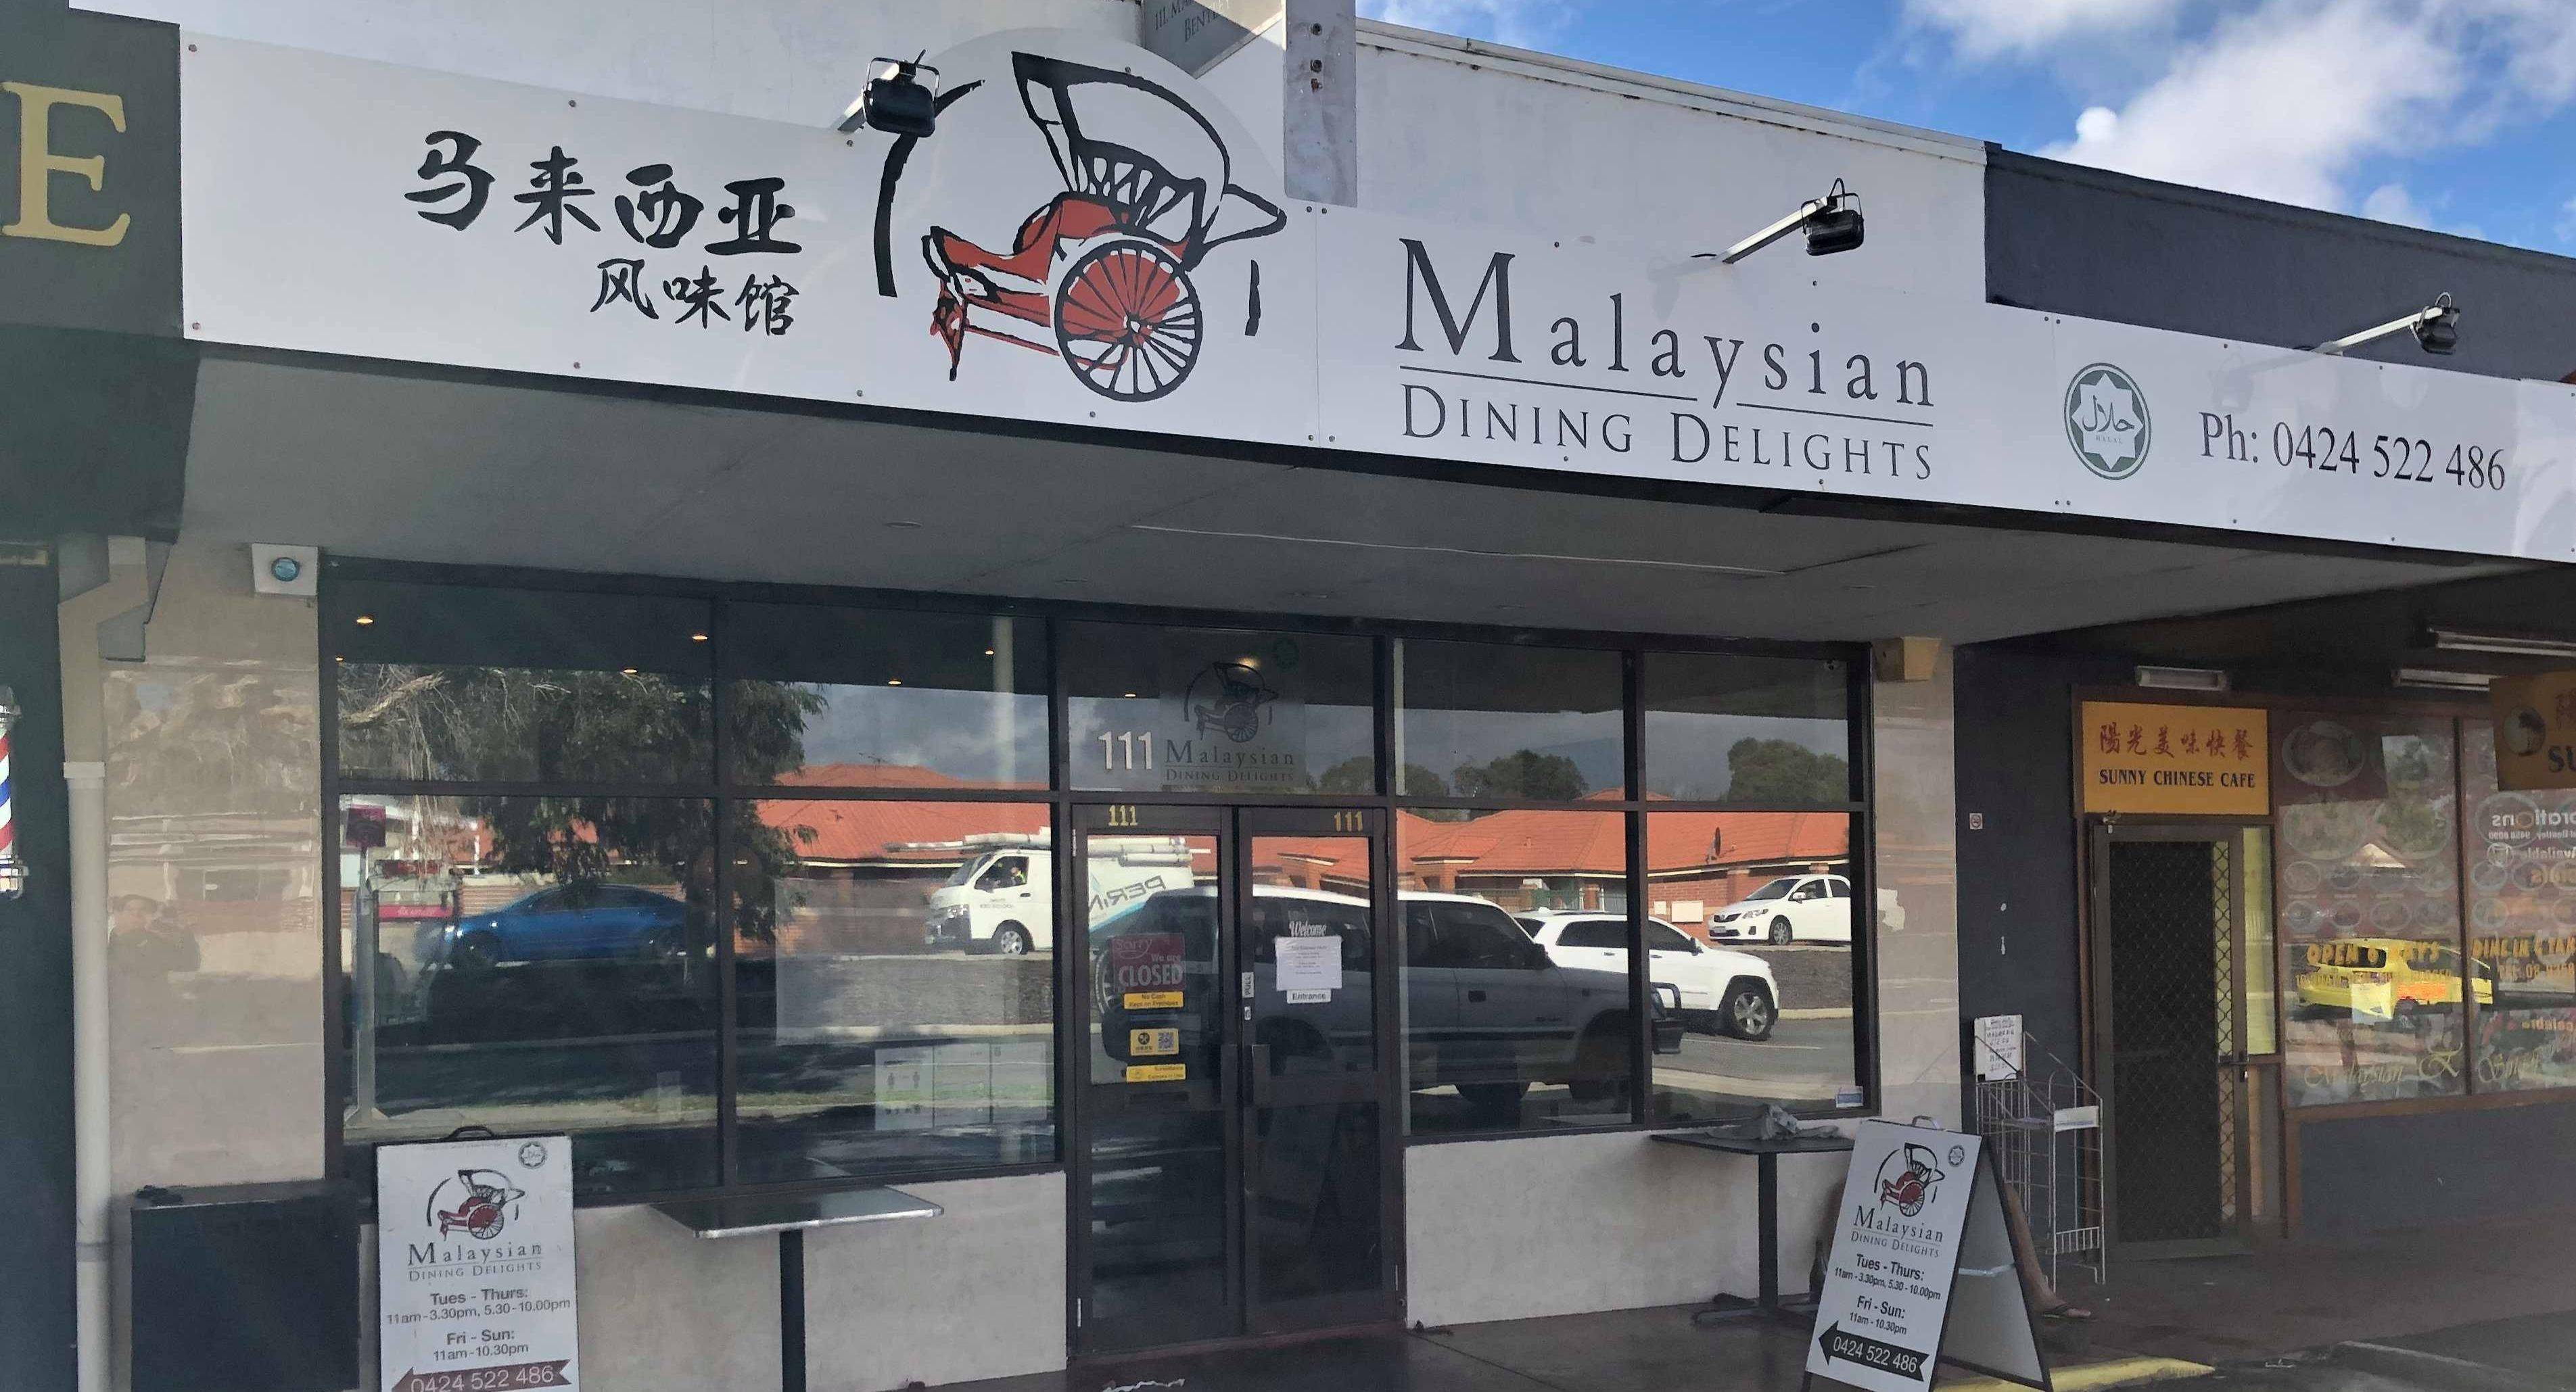 Malaysian Dining Delights